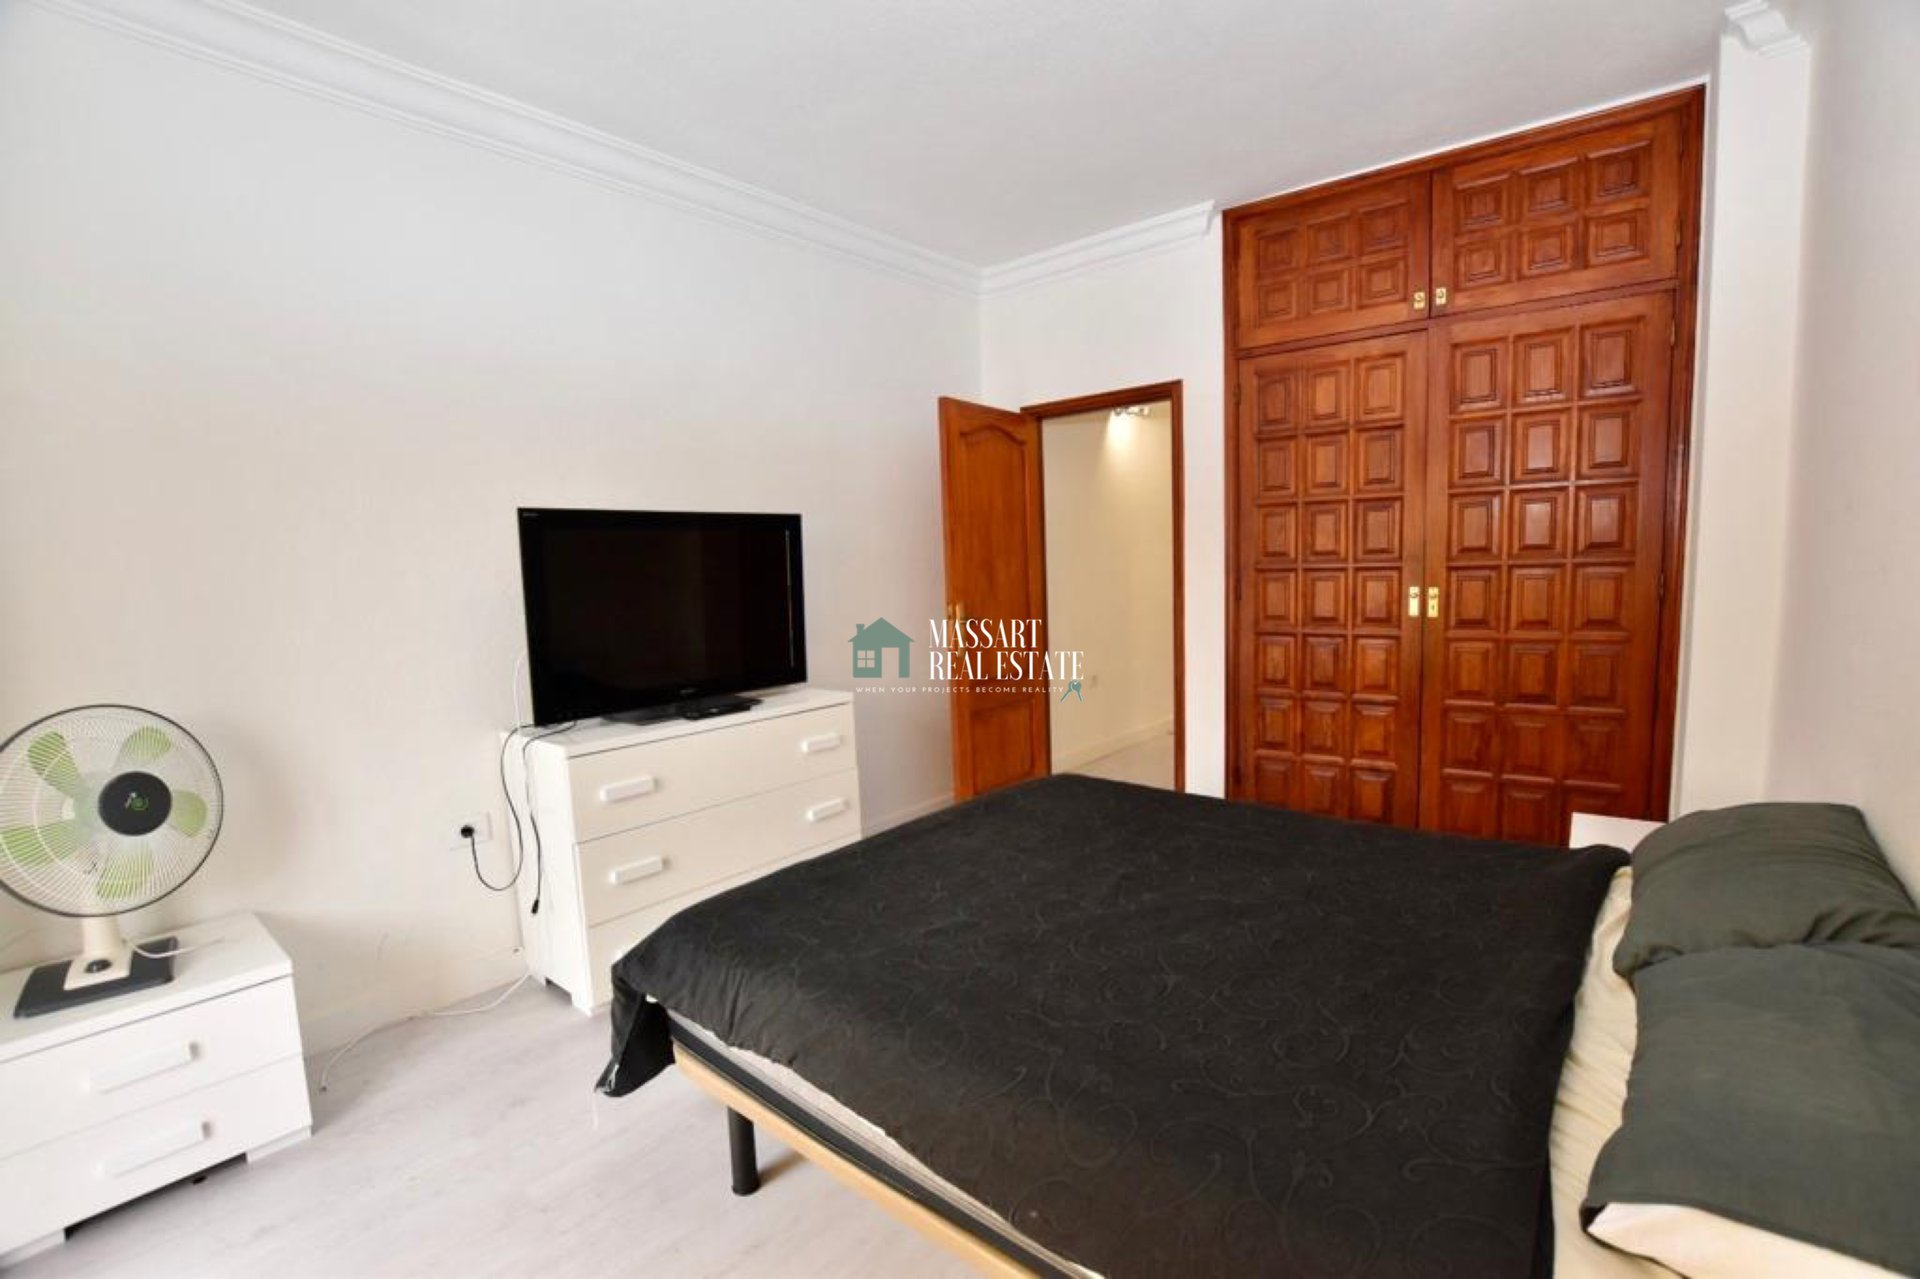 156 m2 apartment characterized by its strategic location, in the center of Adeje, as well as its brightness and good distribution.